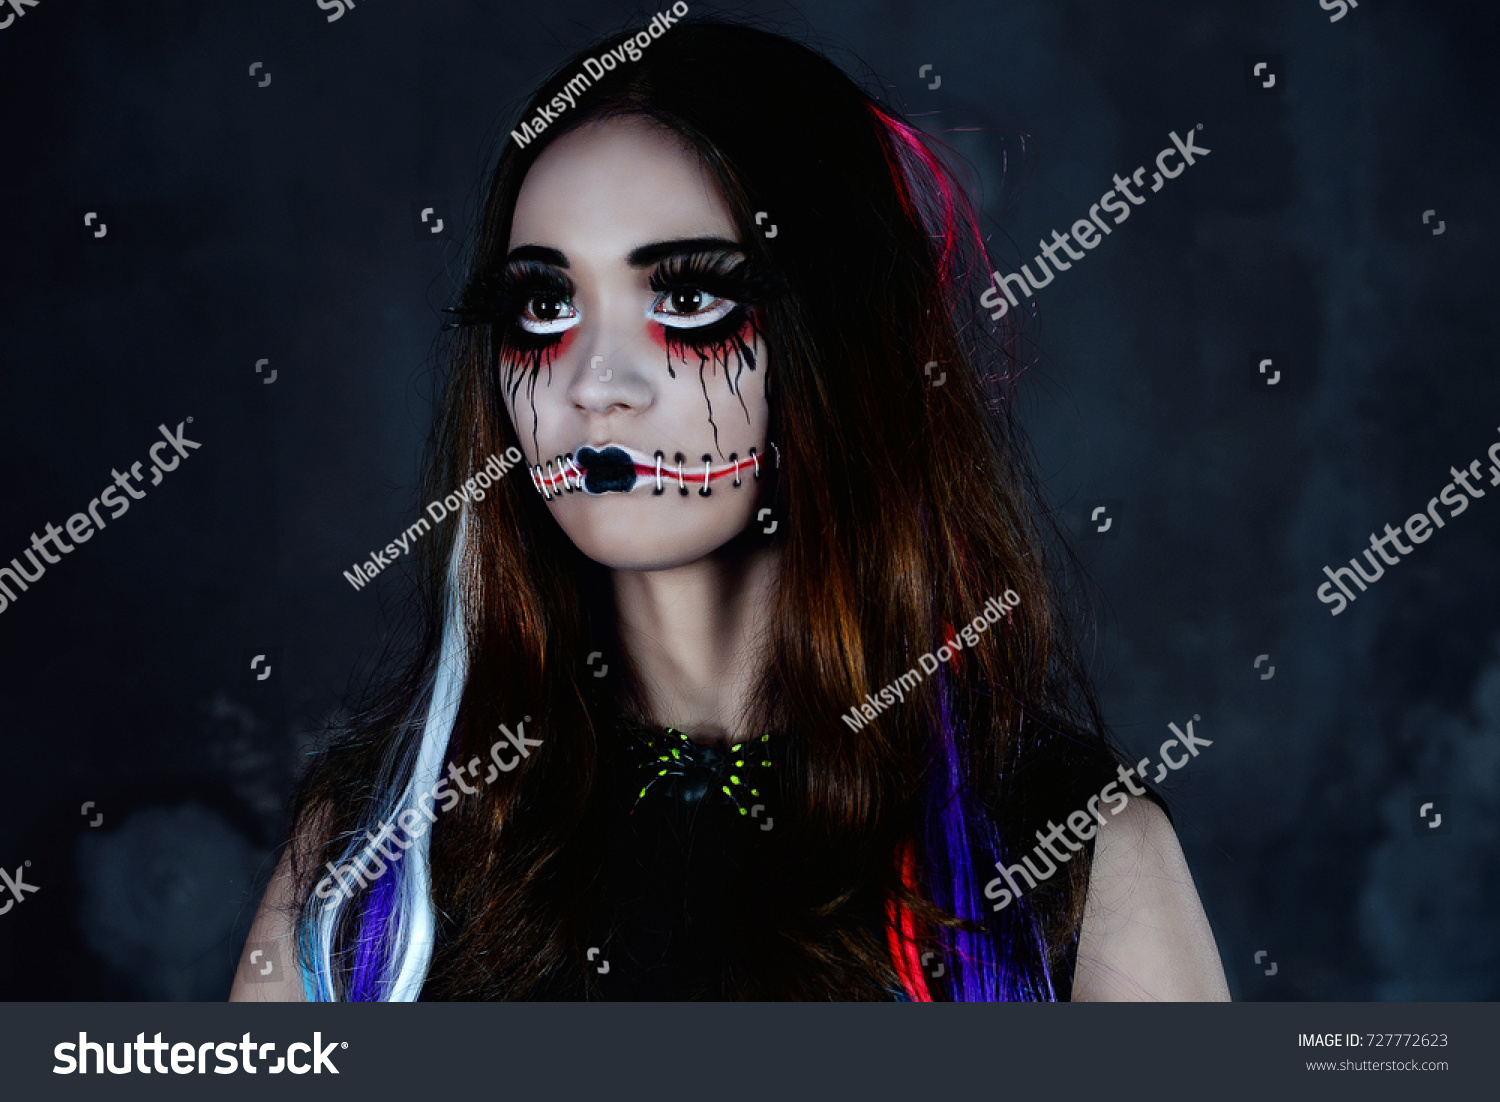 scary doll mouth sewn shut halloween stock photo (edit now